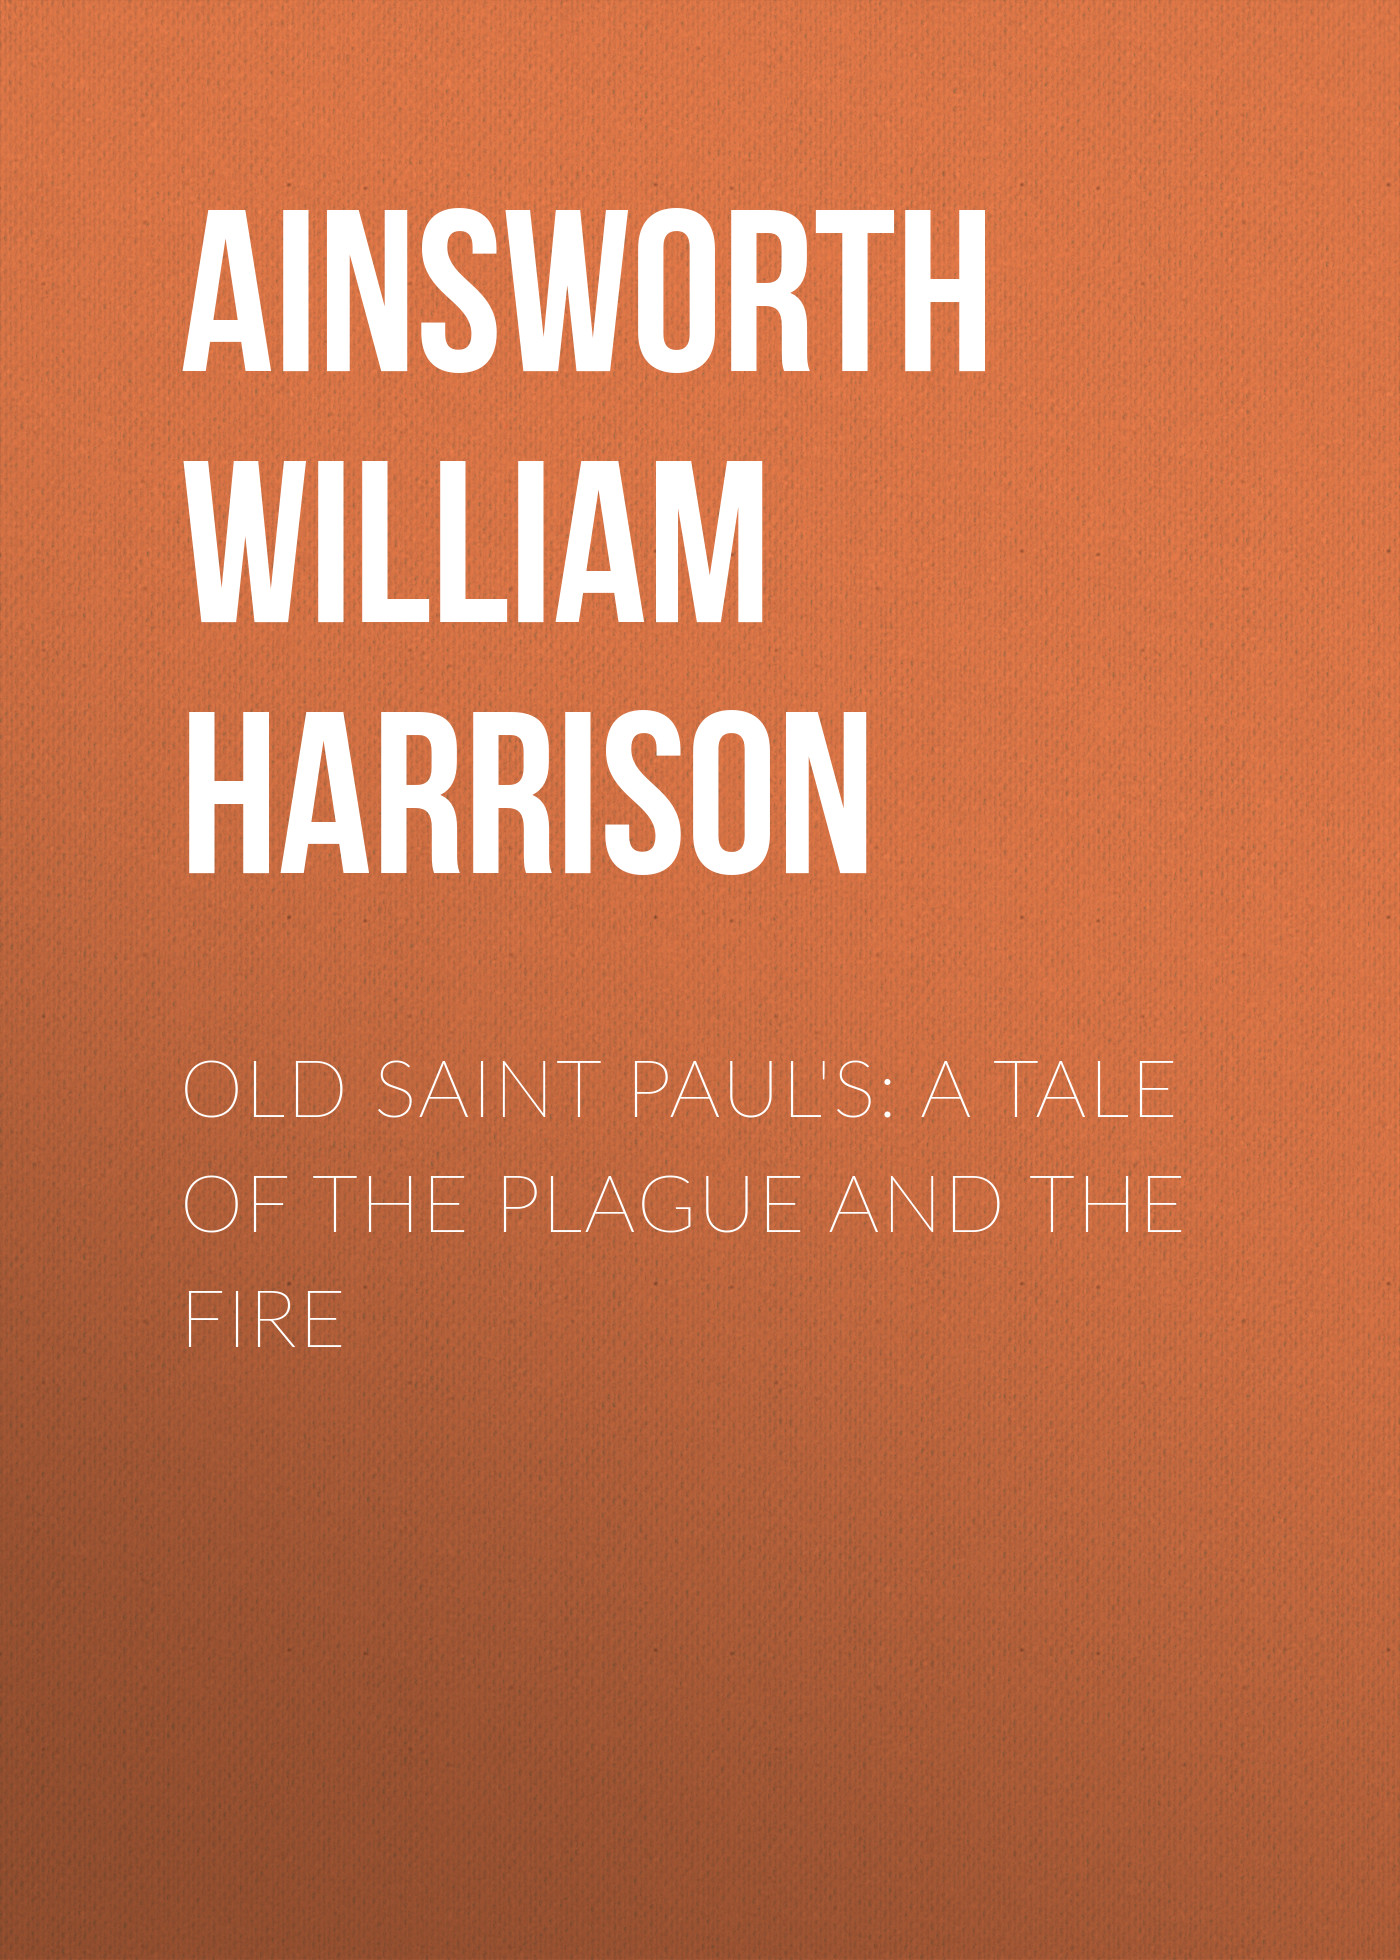 Ainsworth William Harrison Old Saint Paul's: A Tale of the Plague and the Fire publishing hardpress publishing hardpress publishing old new zealand a tale of the good old times